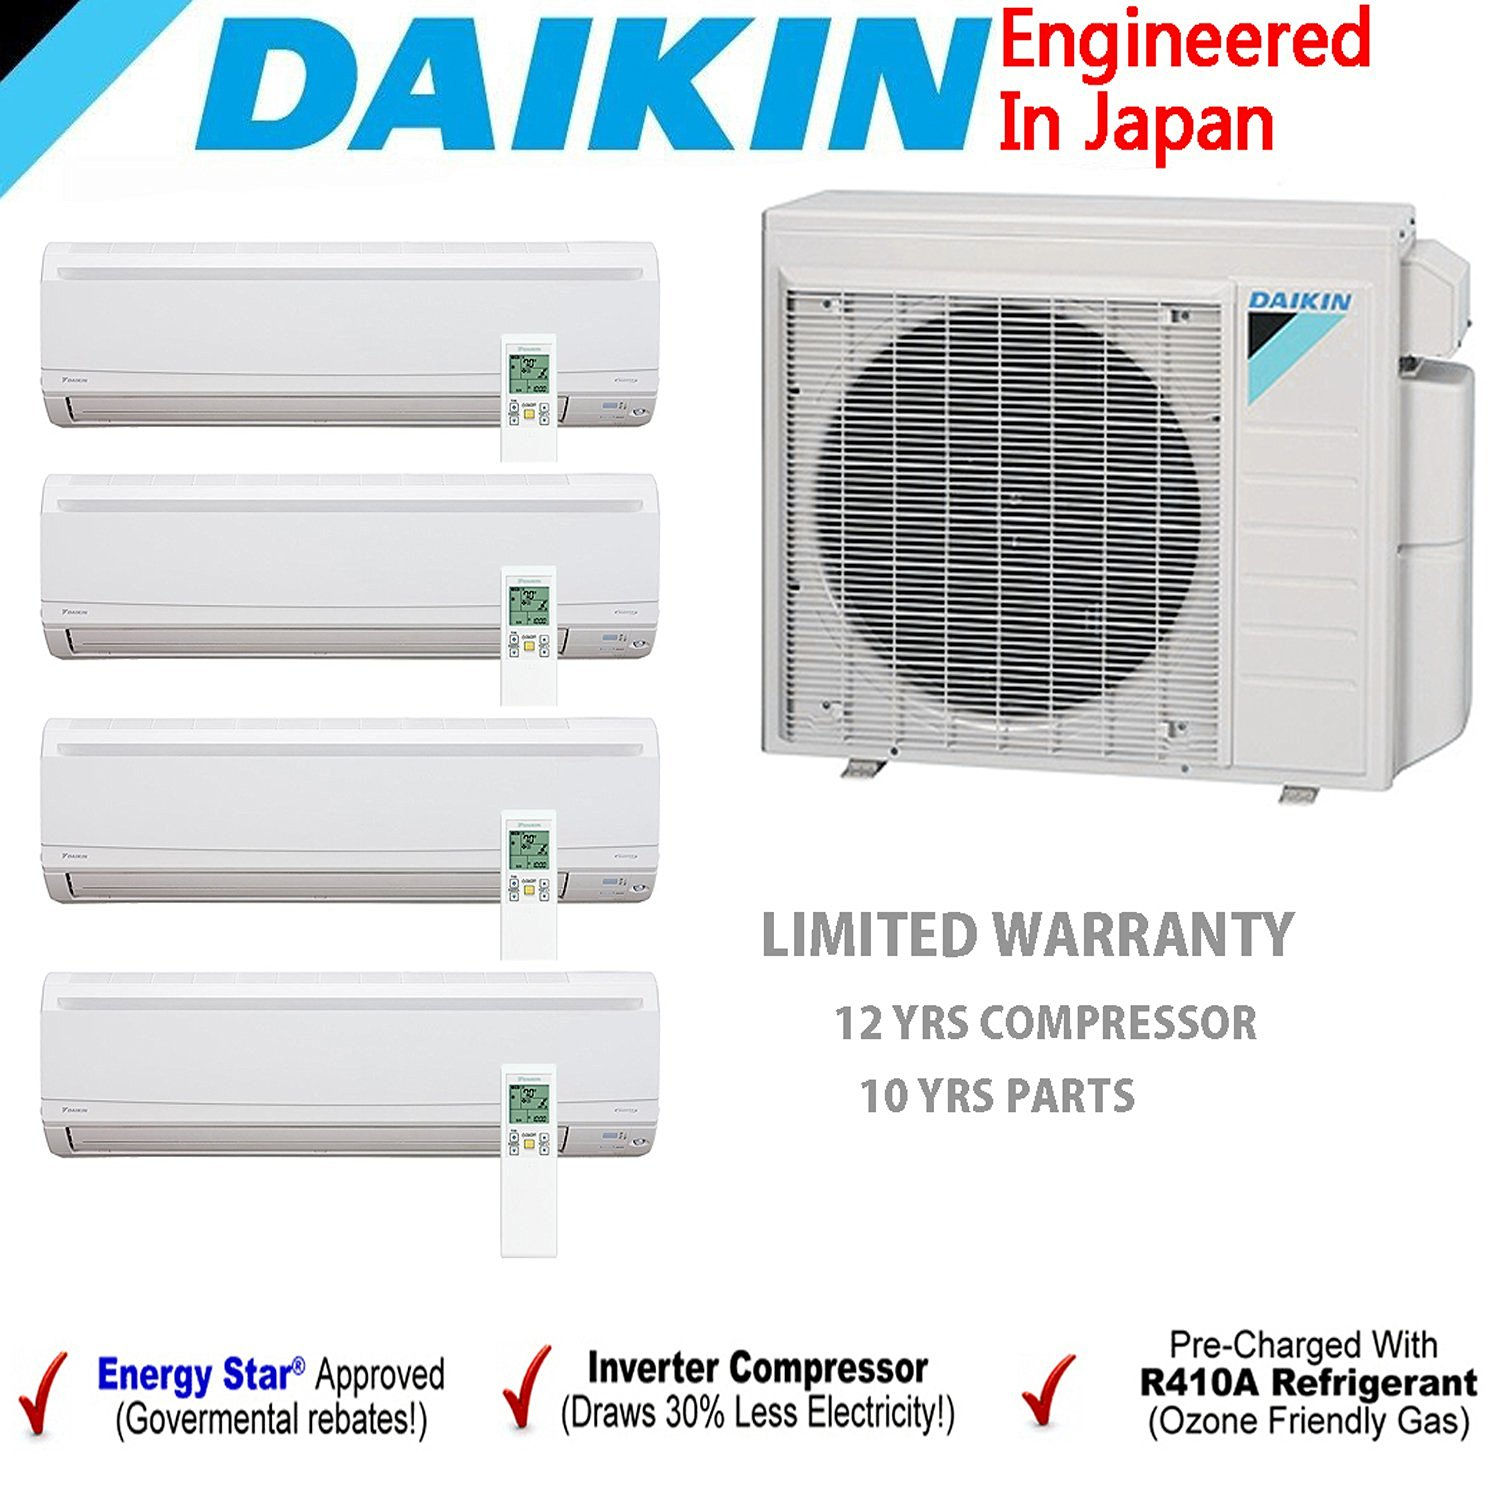 Daikin Air Conditioner User Guide